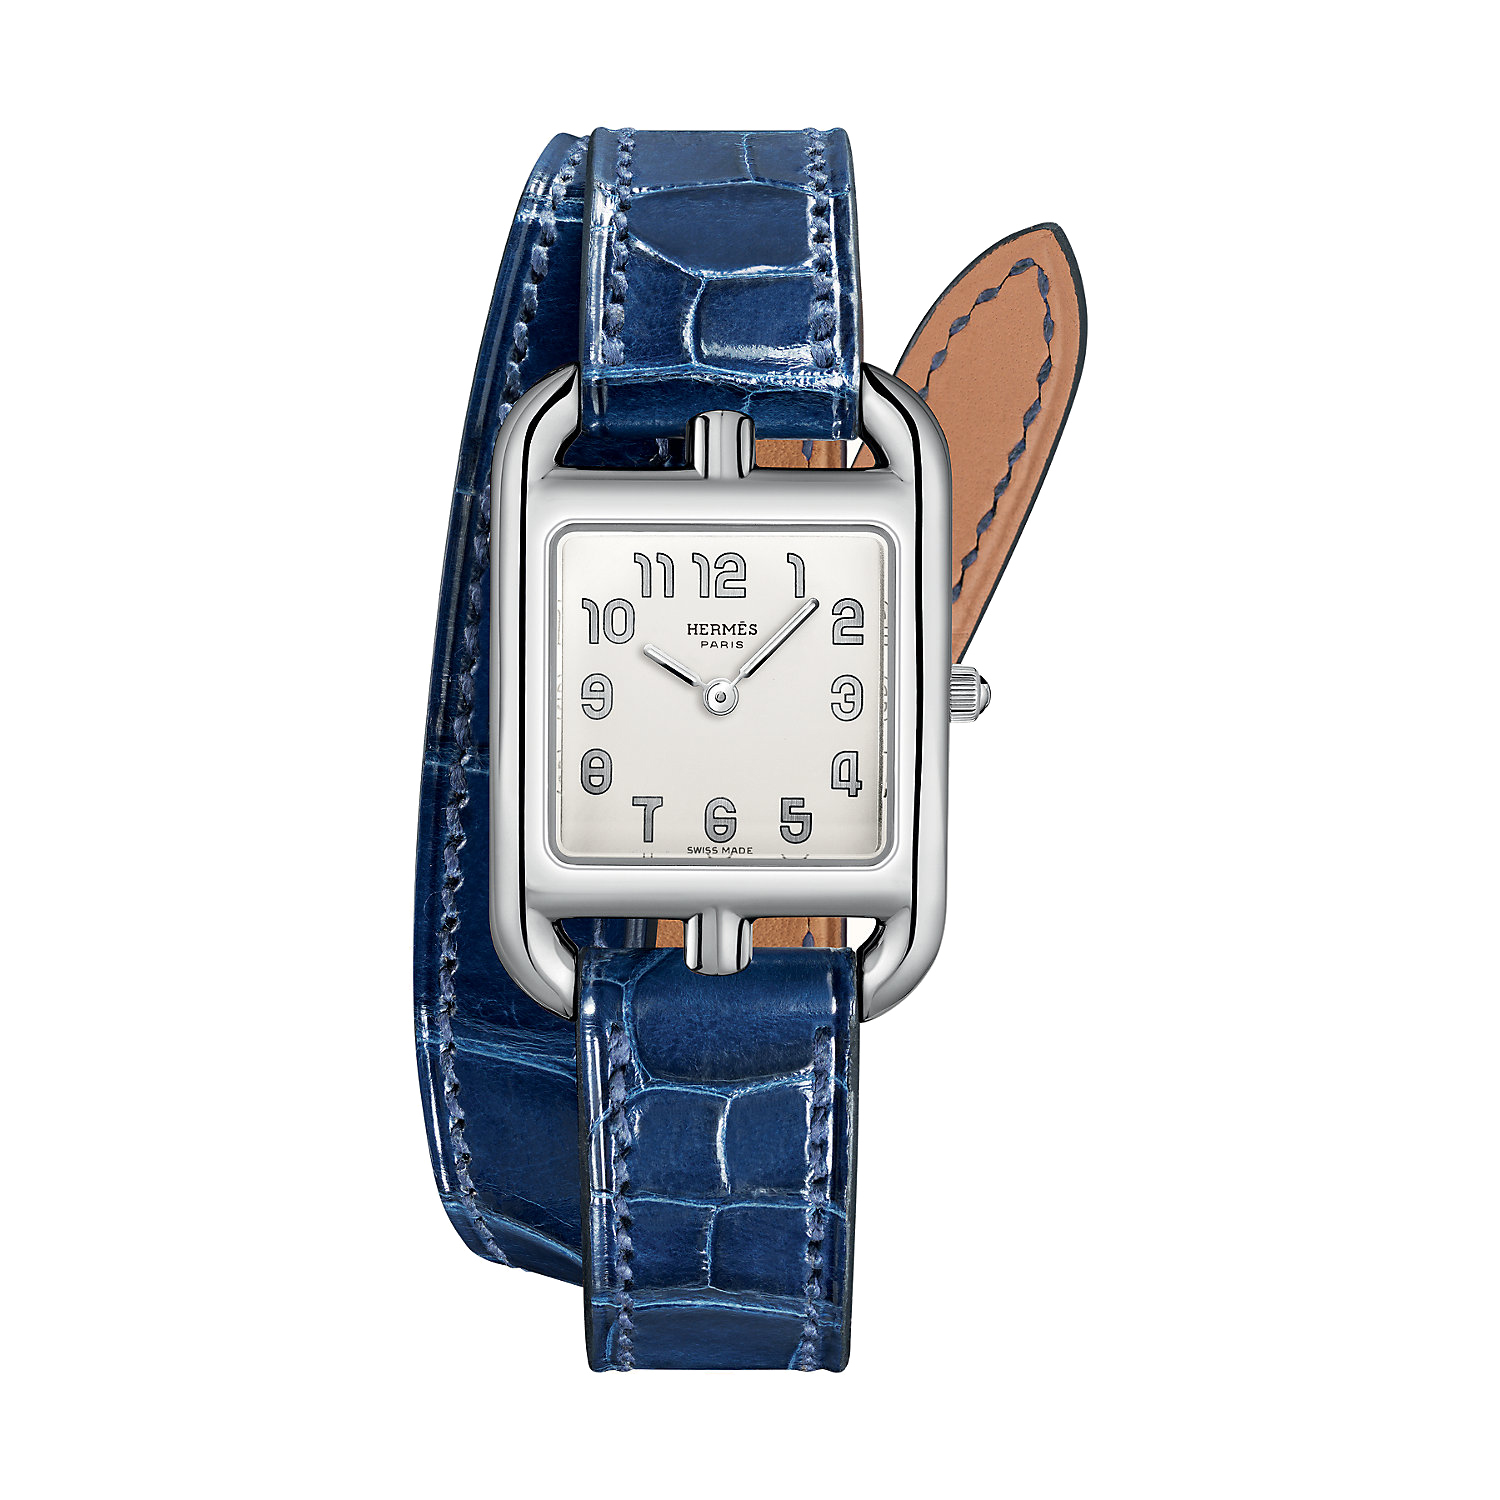 Hermès-cape-cod-23-x-23mm-Hall-of-Time-043763WW00